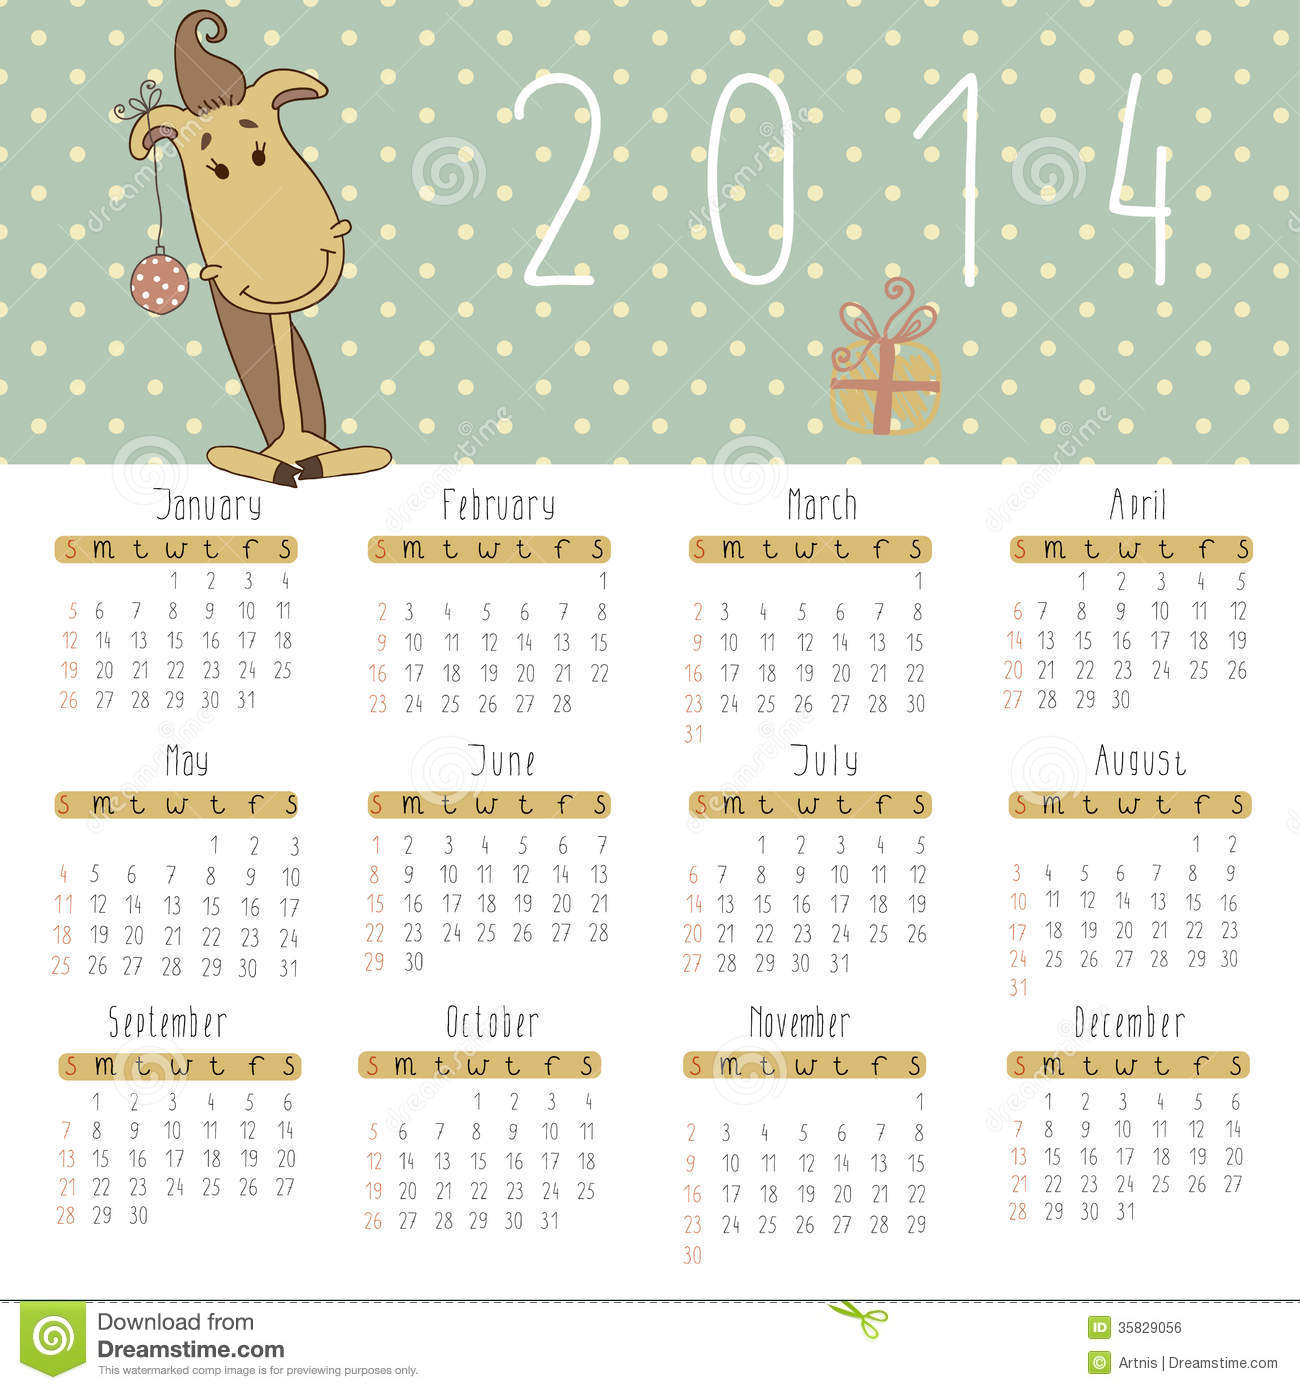 Calendar for 2014 with cute new year horse stock vector for How to make a cute calendar